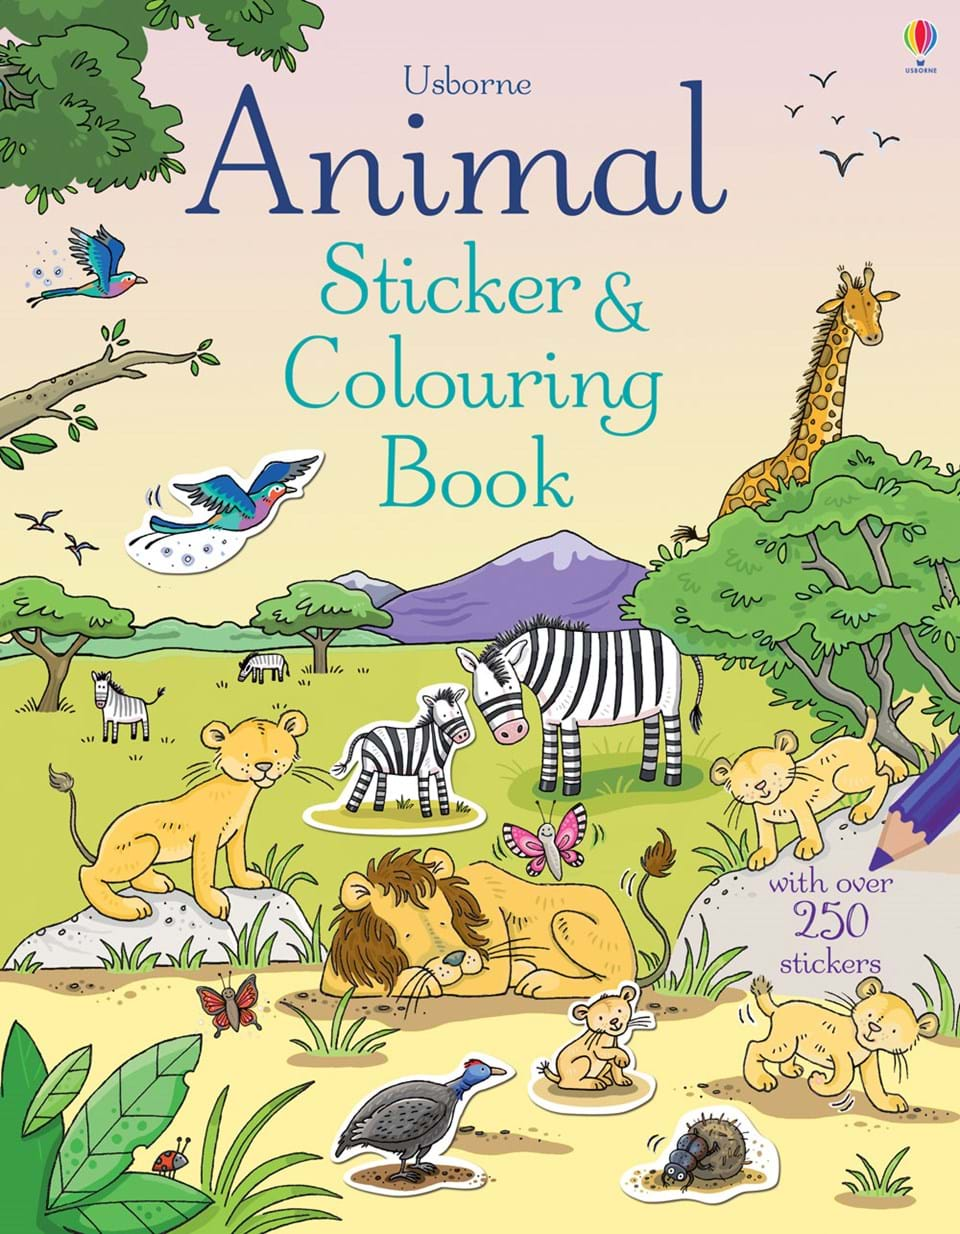 """Animal sticker and colouring book"""" at Usborne Books at Home"""